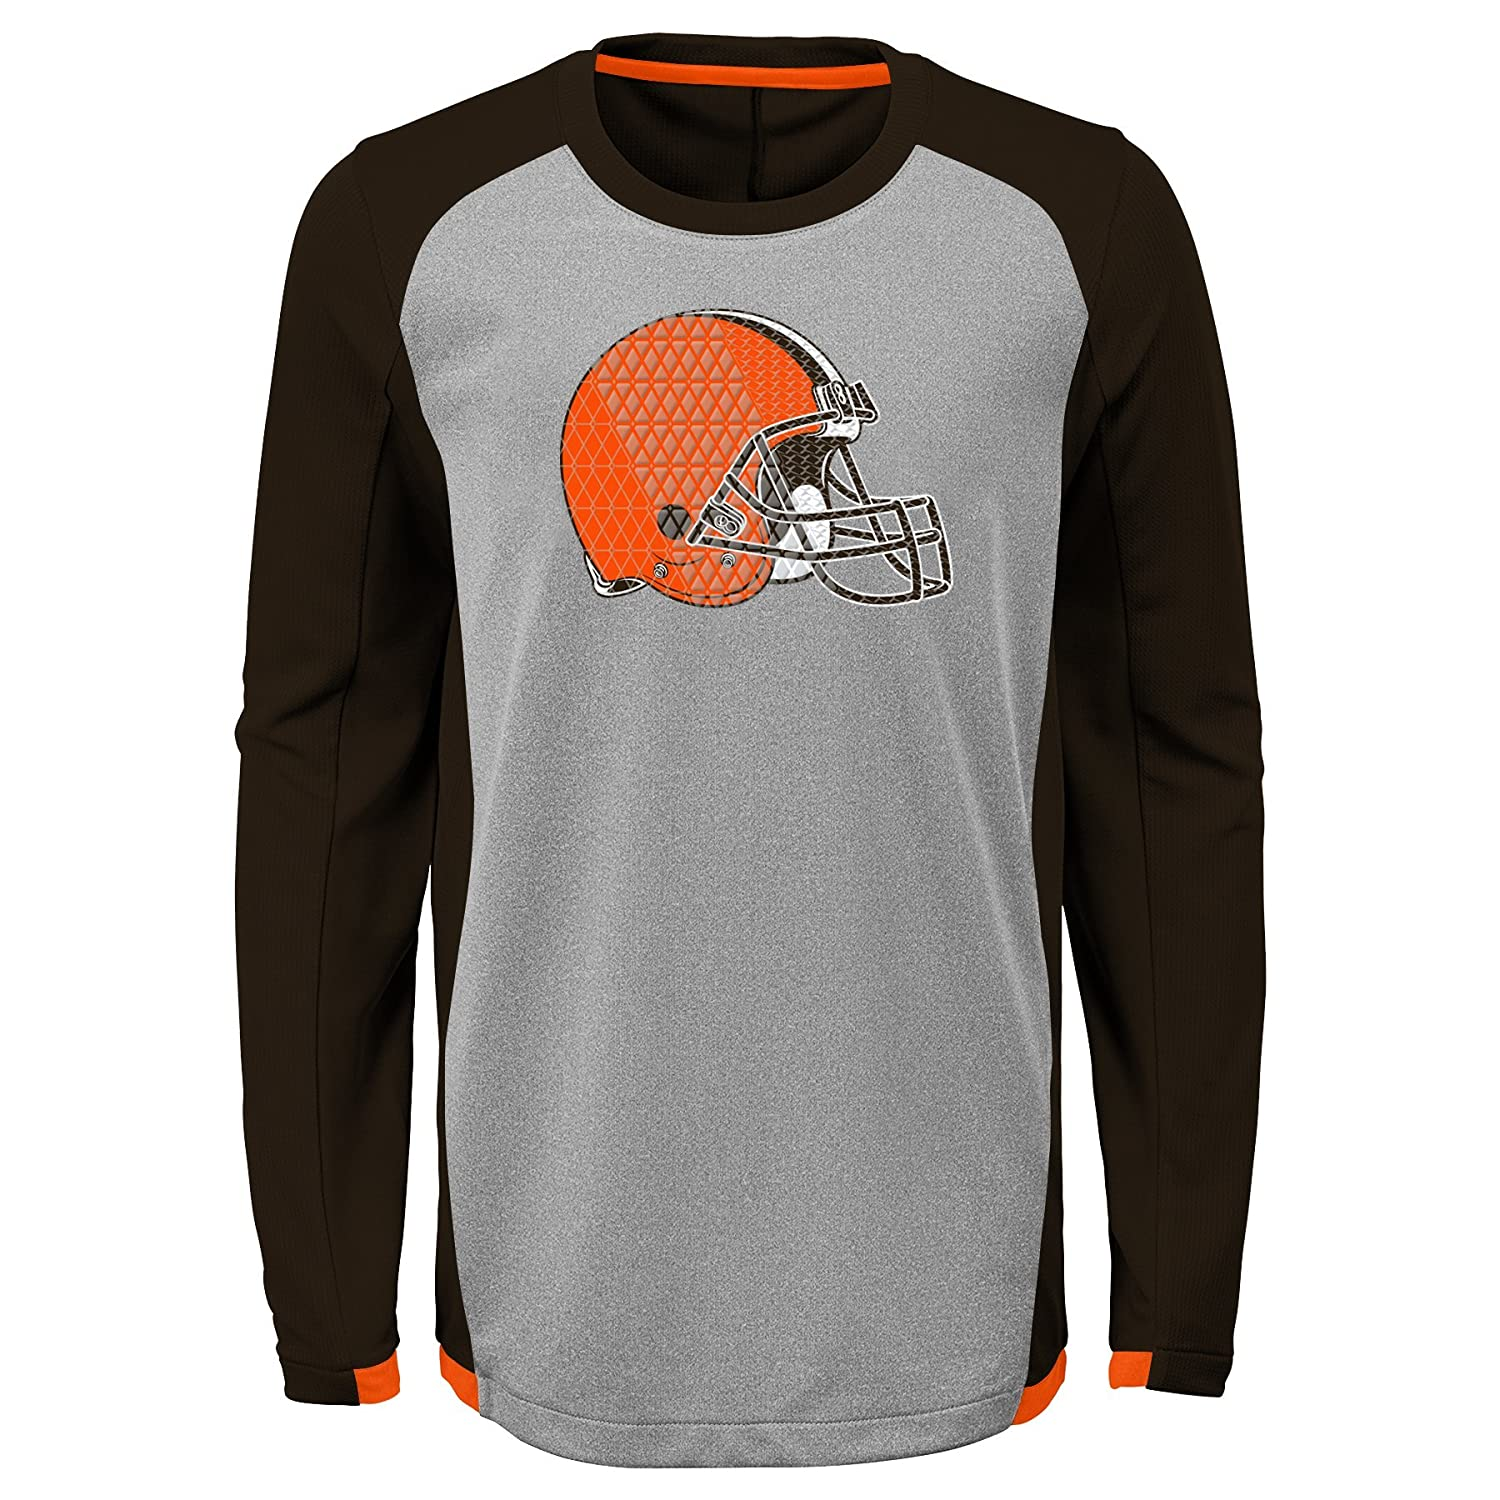 10-12 Outerstuff NFL Cleveland Browns Kids /& Youth Boys Mainframe Performance Tee Brown Suede Youth Medium